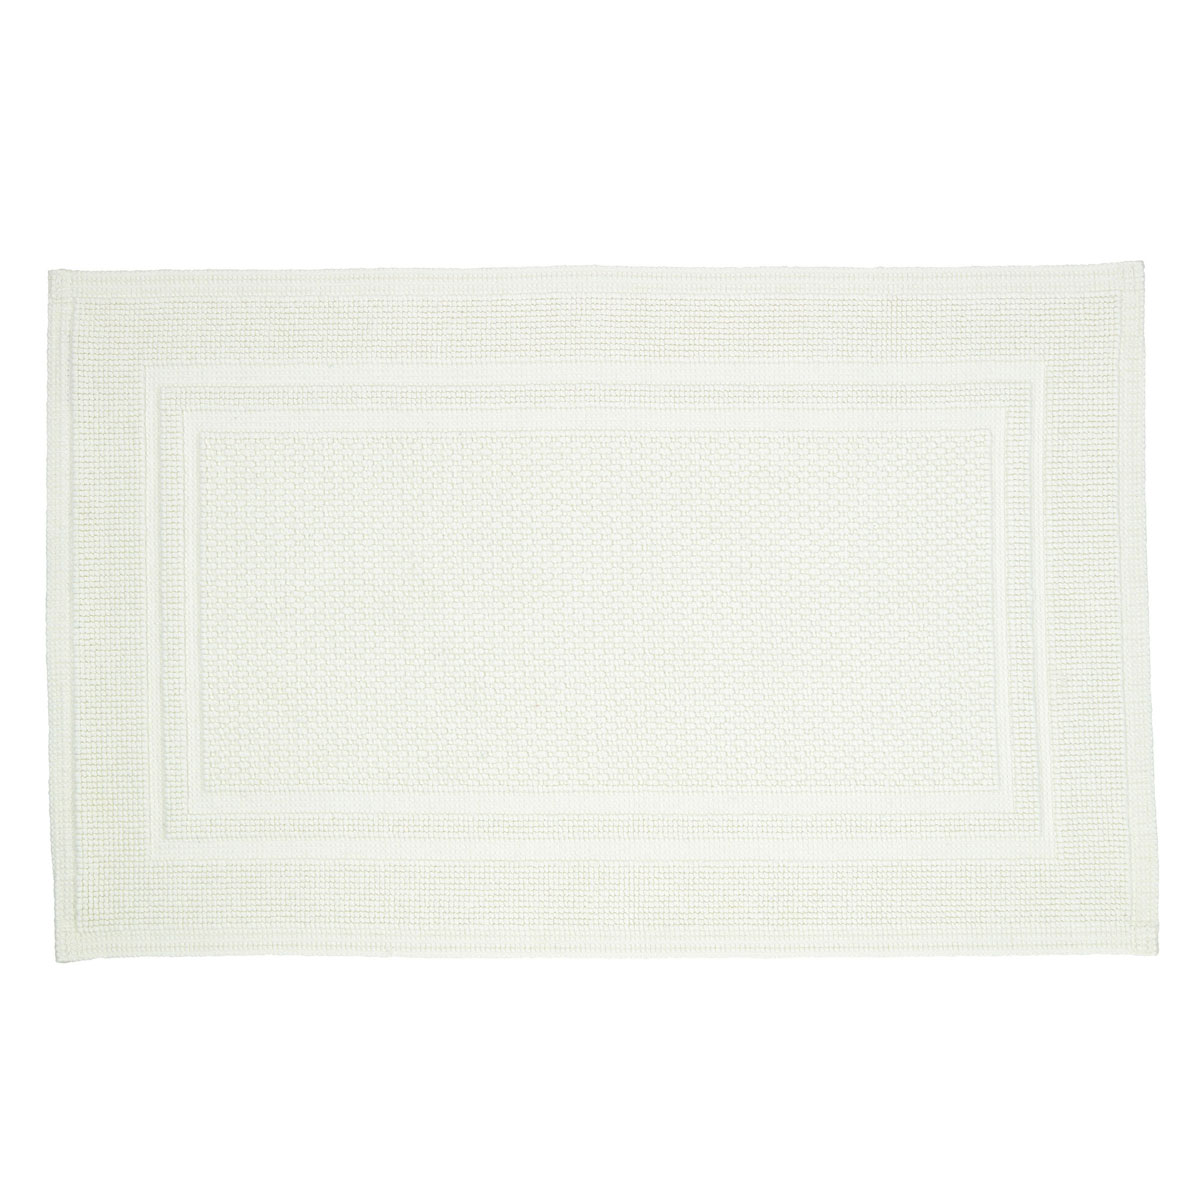 An image of Luxury Fina Bath Mat in Opal (White/Cream) by Christy